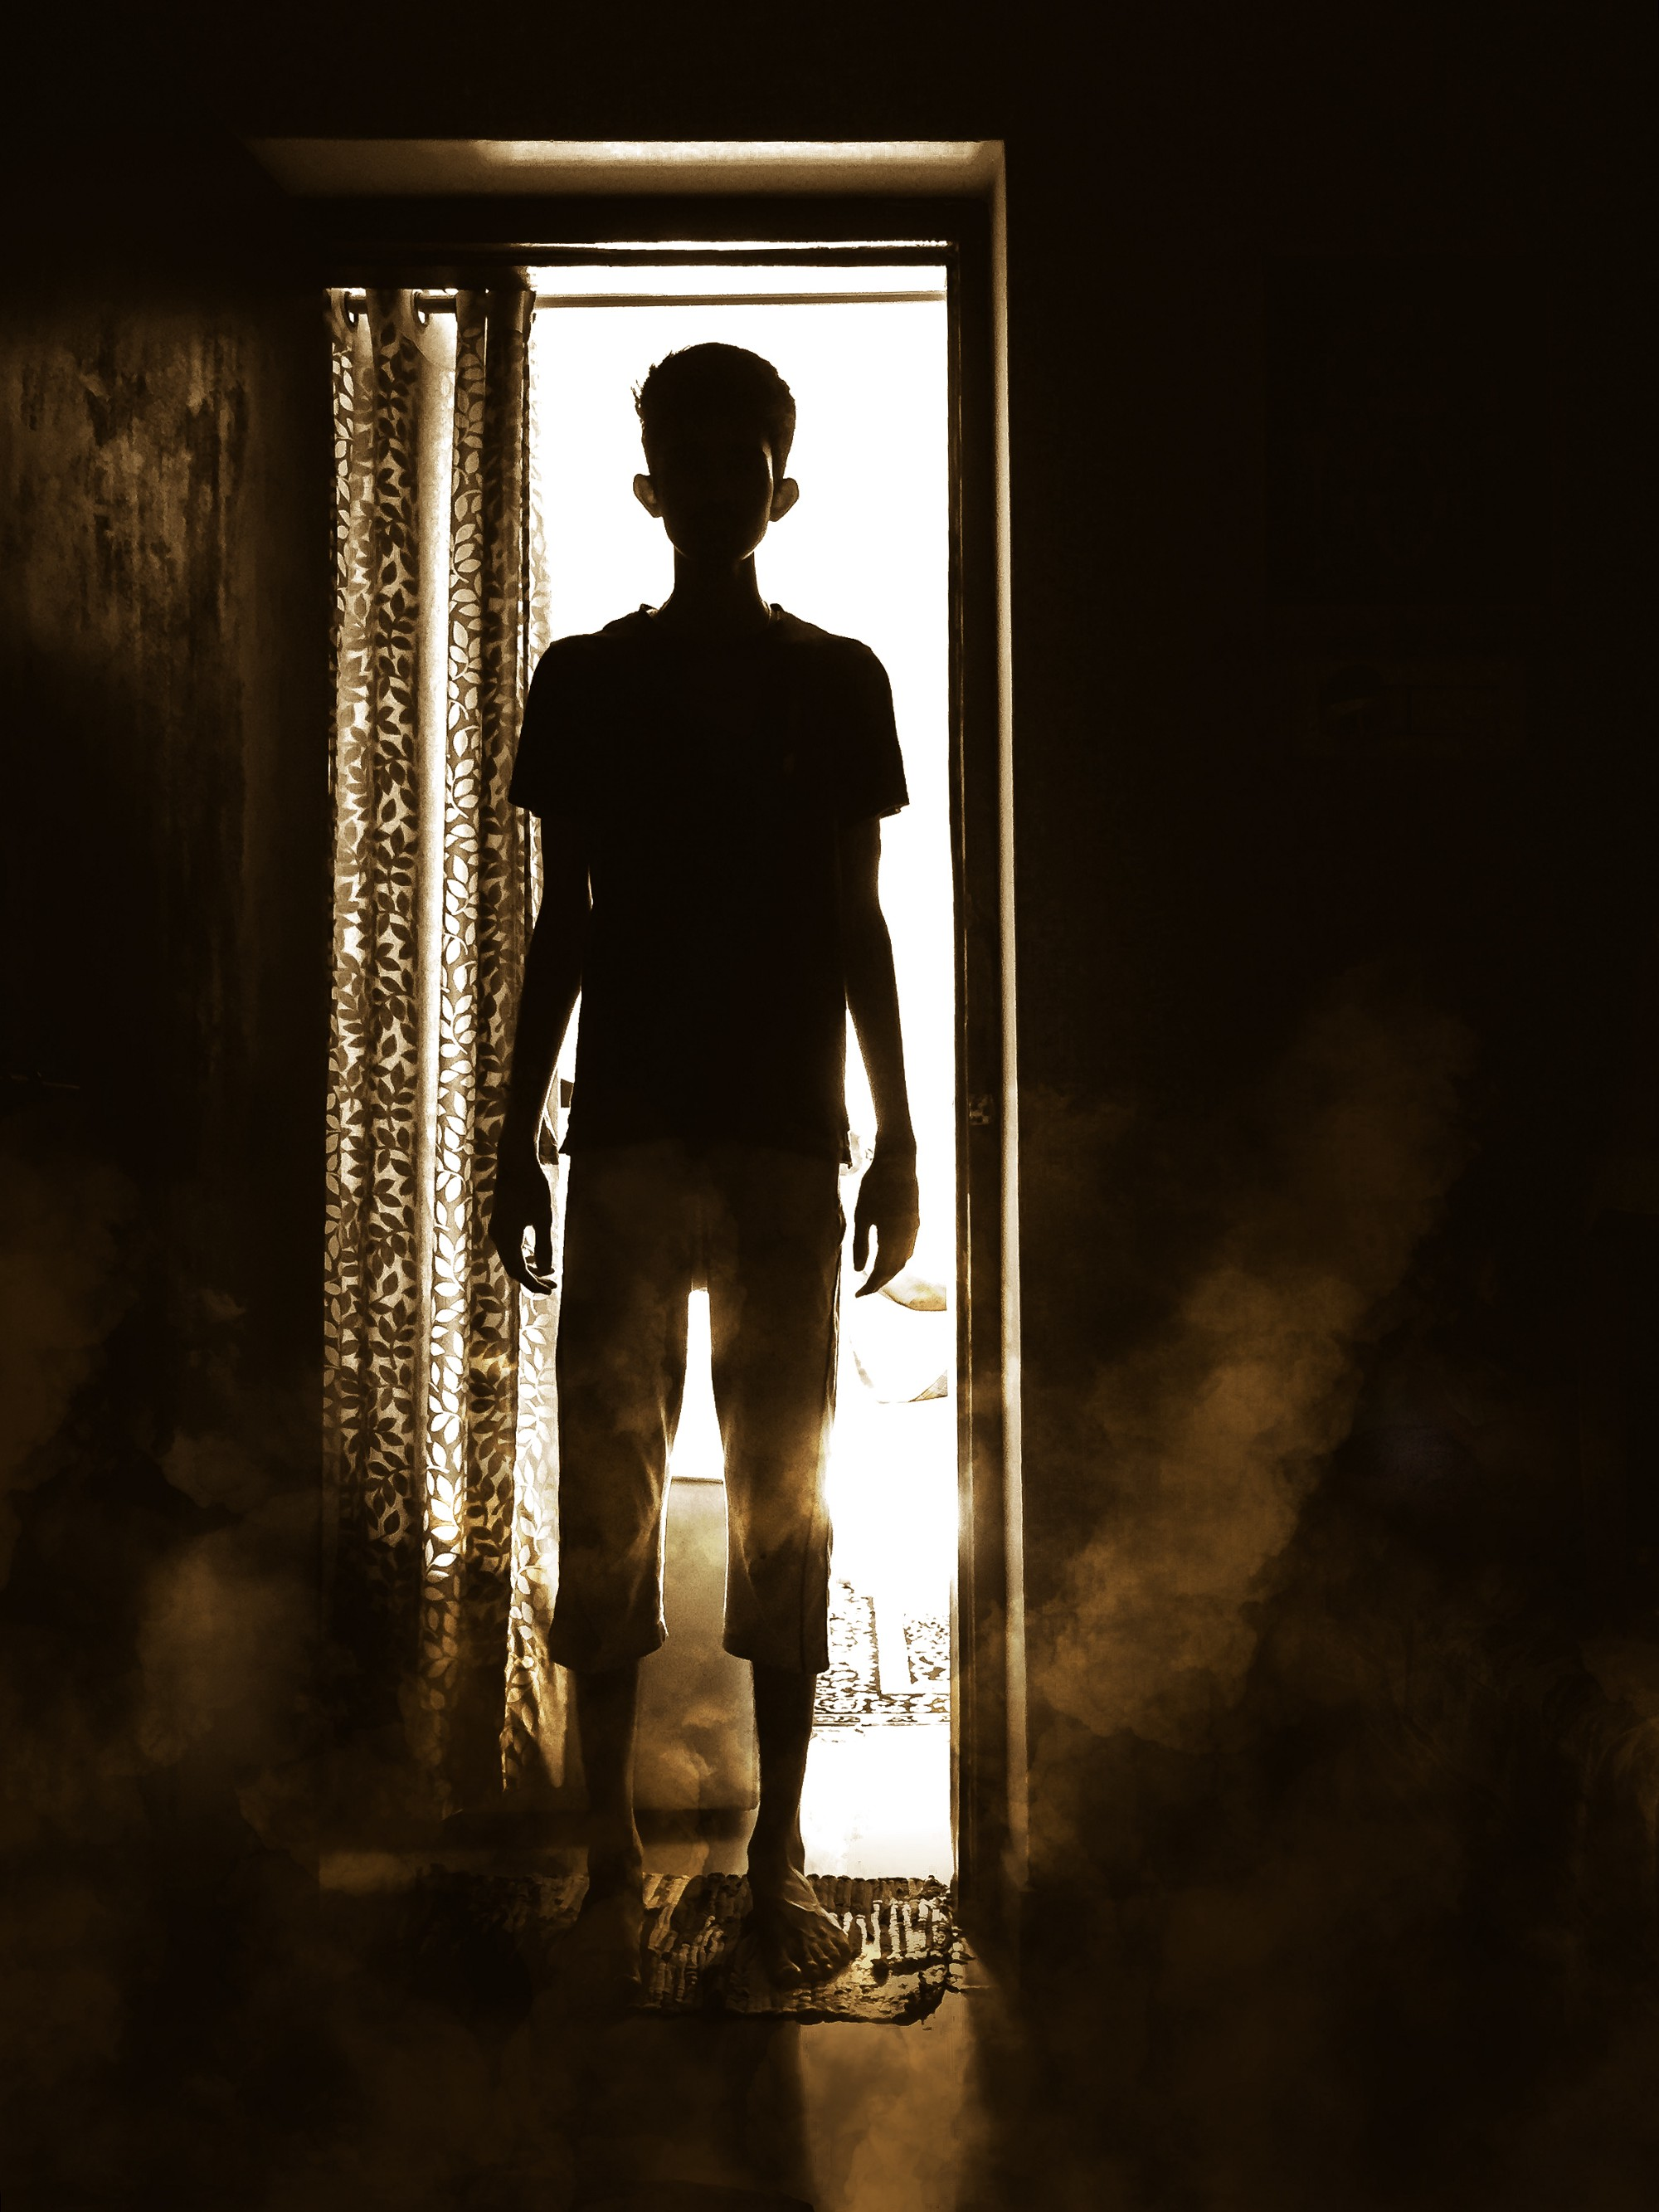 The dark silhouette of a child in a doorway.